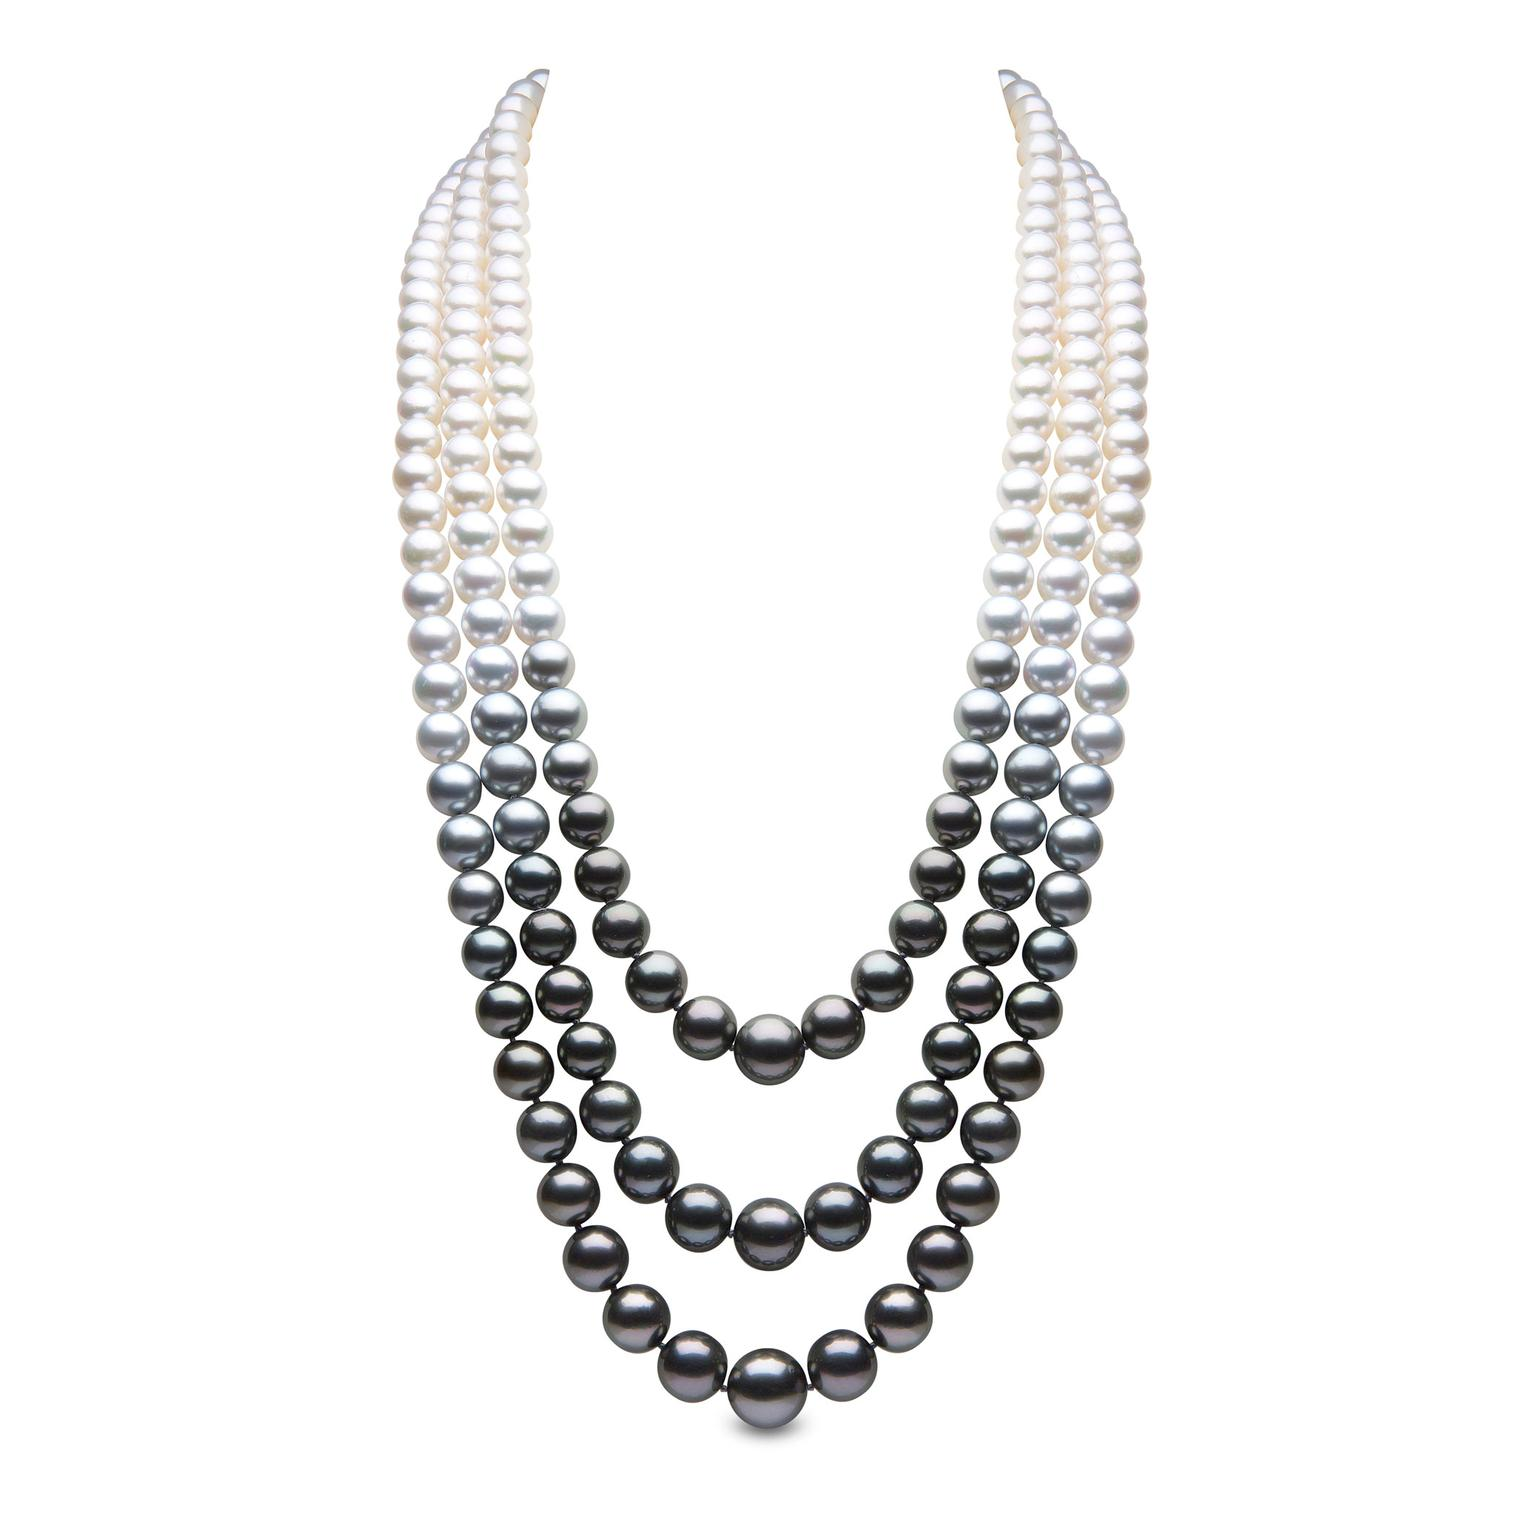 YOKO London Twilight graduated pearl necklace